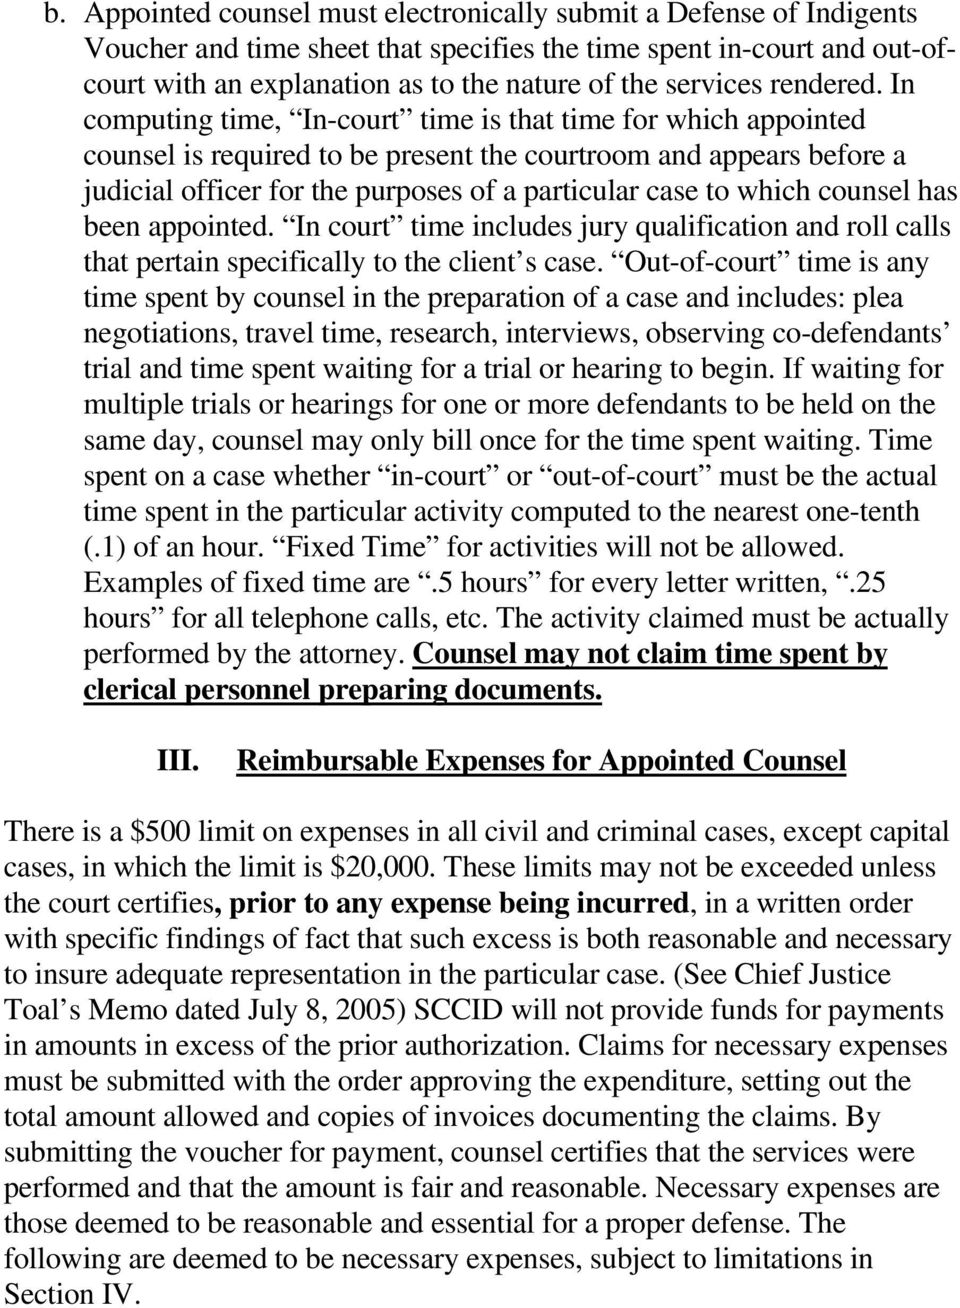 In computing time, In-court time is that time for which appointed counsel is required to be present the courtroom and appears before a judicial officer for the purposes of a particular case to which